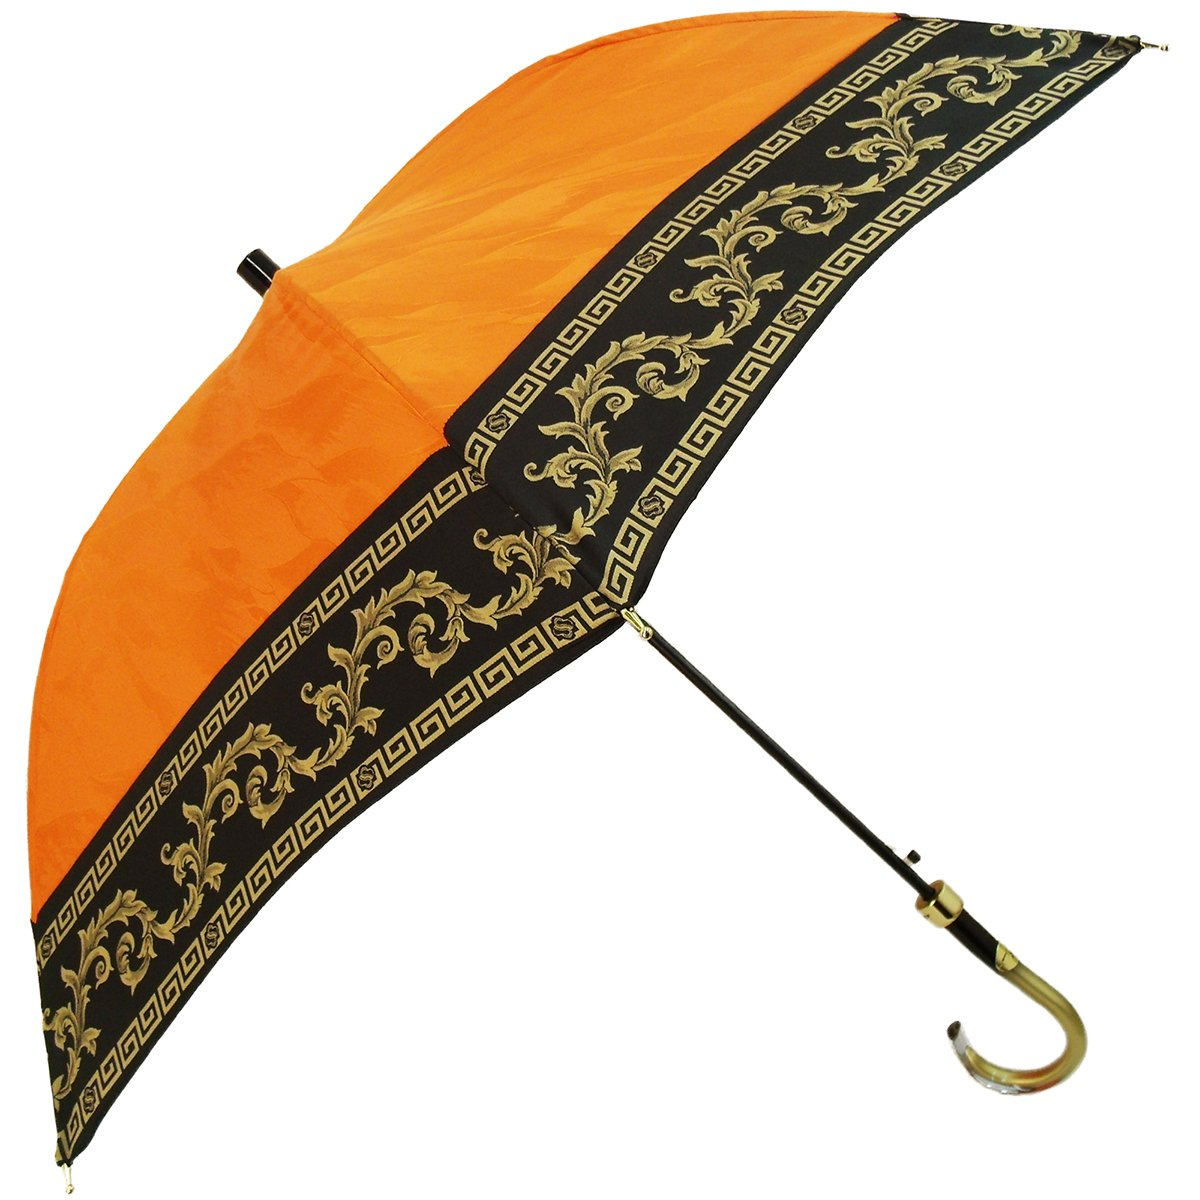 WOMEN'S ORANGE UMBRELLAS